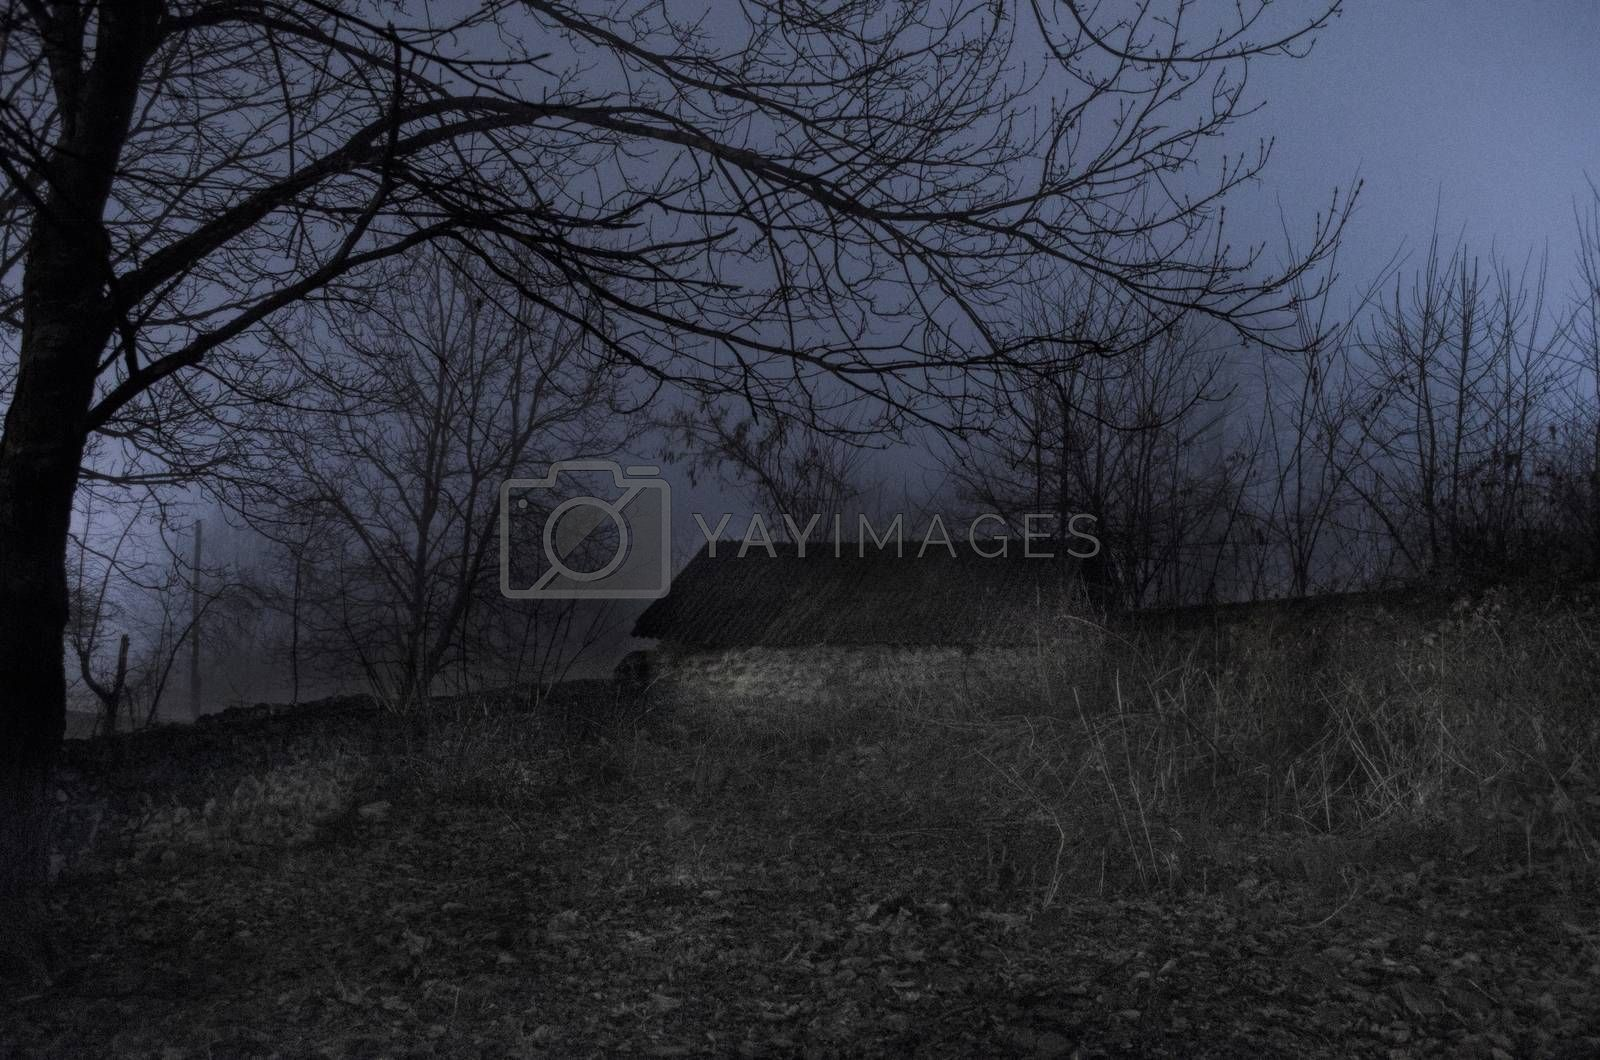 house in fog at night in the garden, Landscape of ghost house in the dark forest.